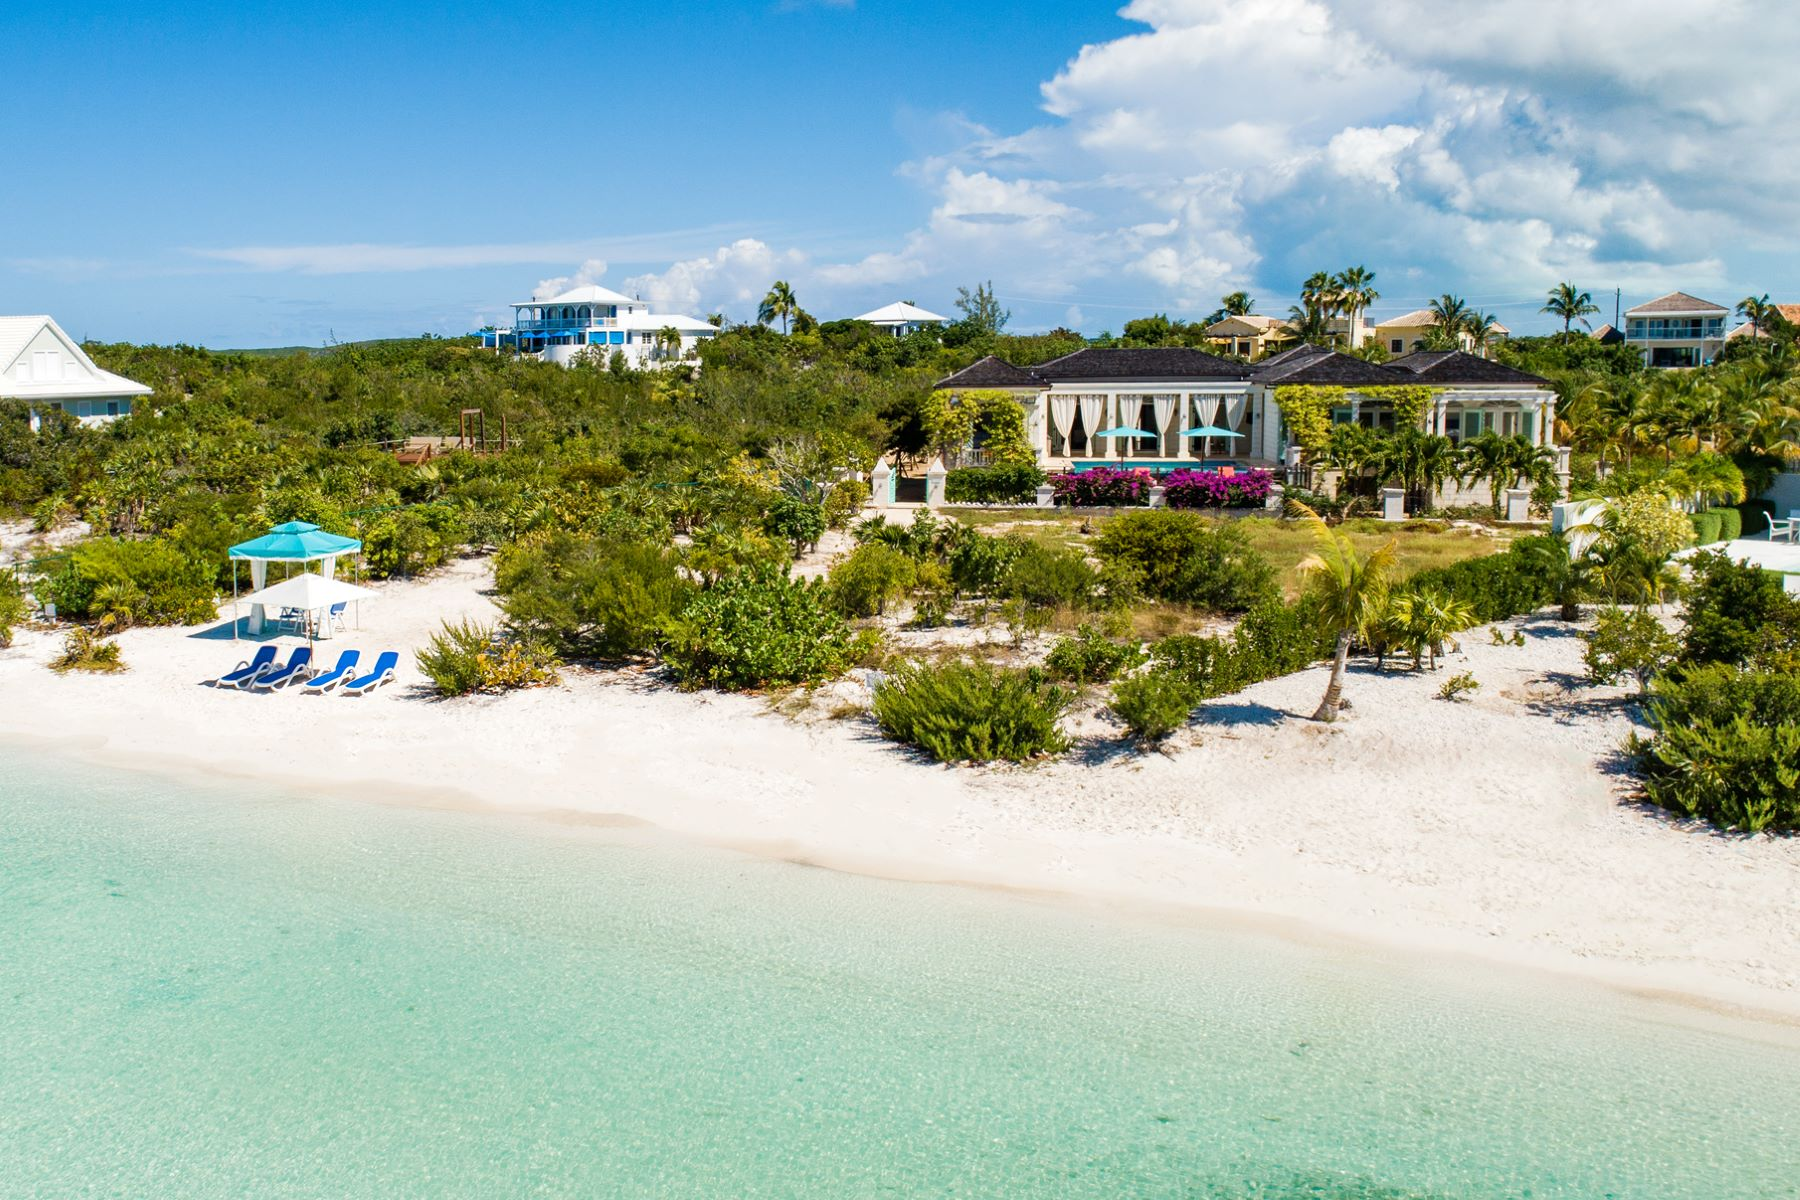 Single Family Home for Sale at The Beach House The Beach House, Sunset Bay Drive Taylor Bay, Providenciales TCI Turks And Caicos Islands